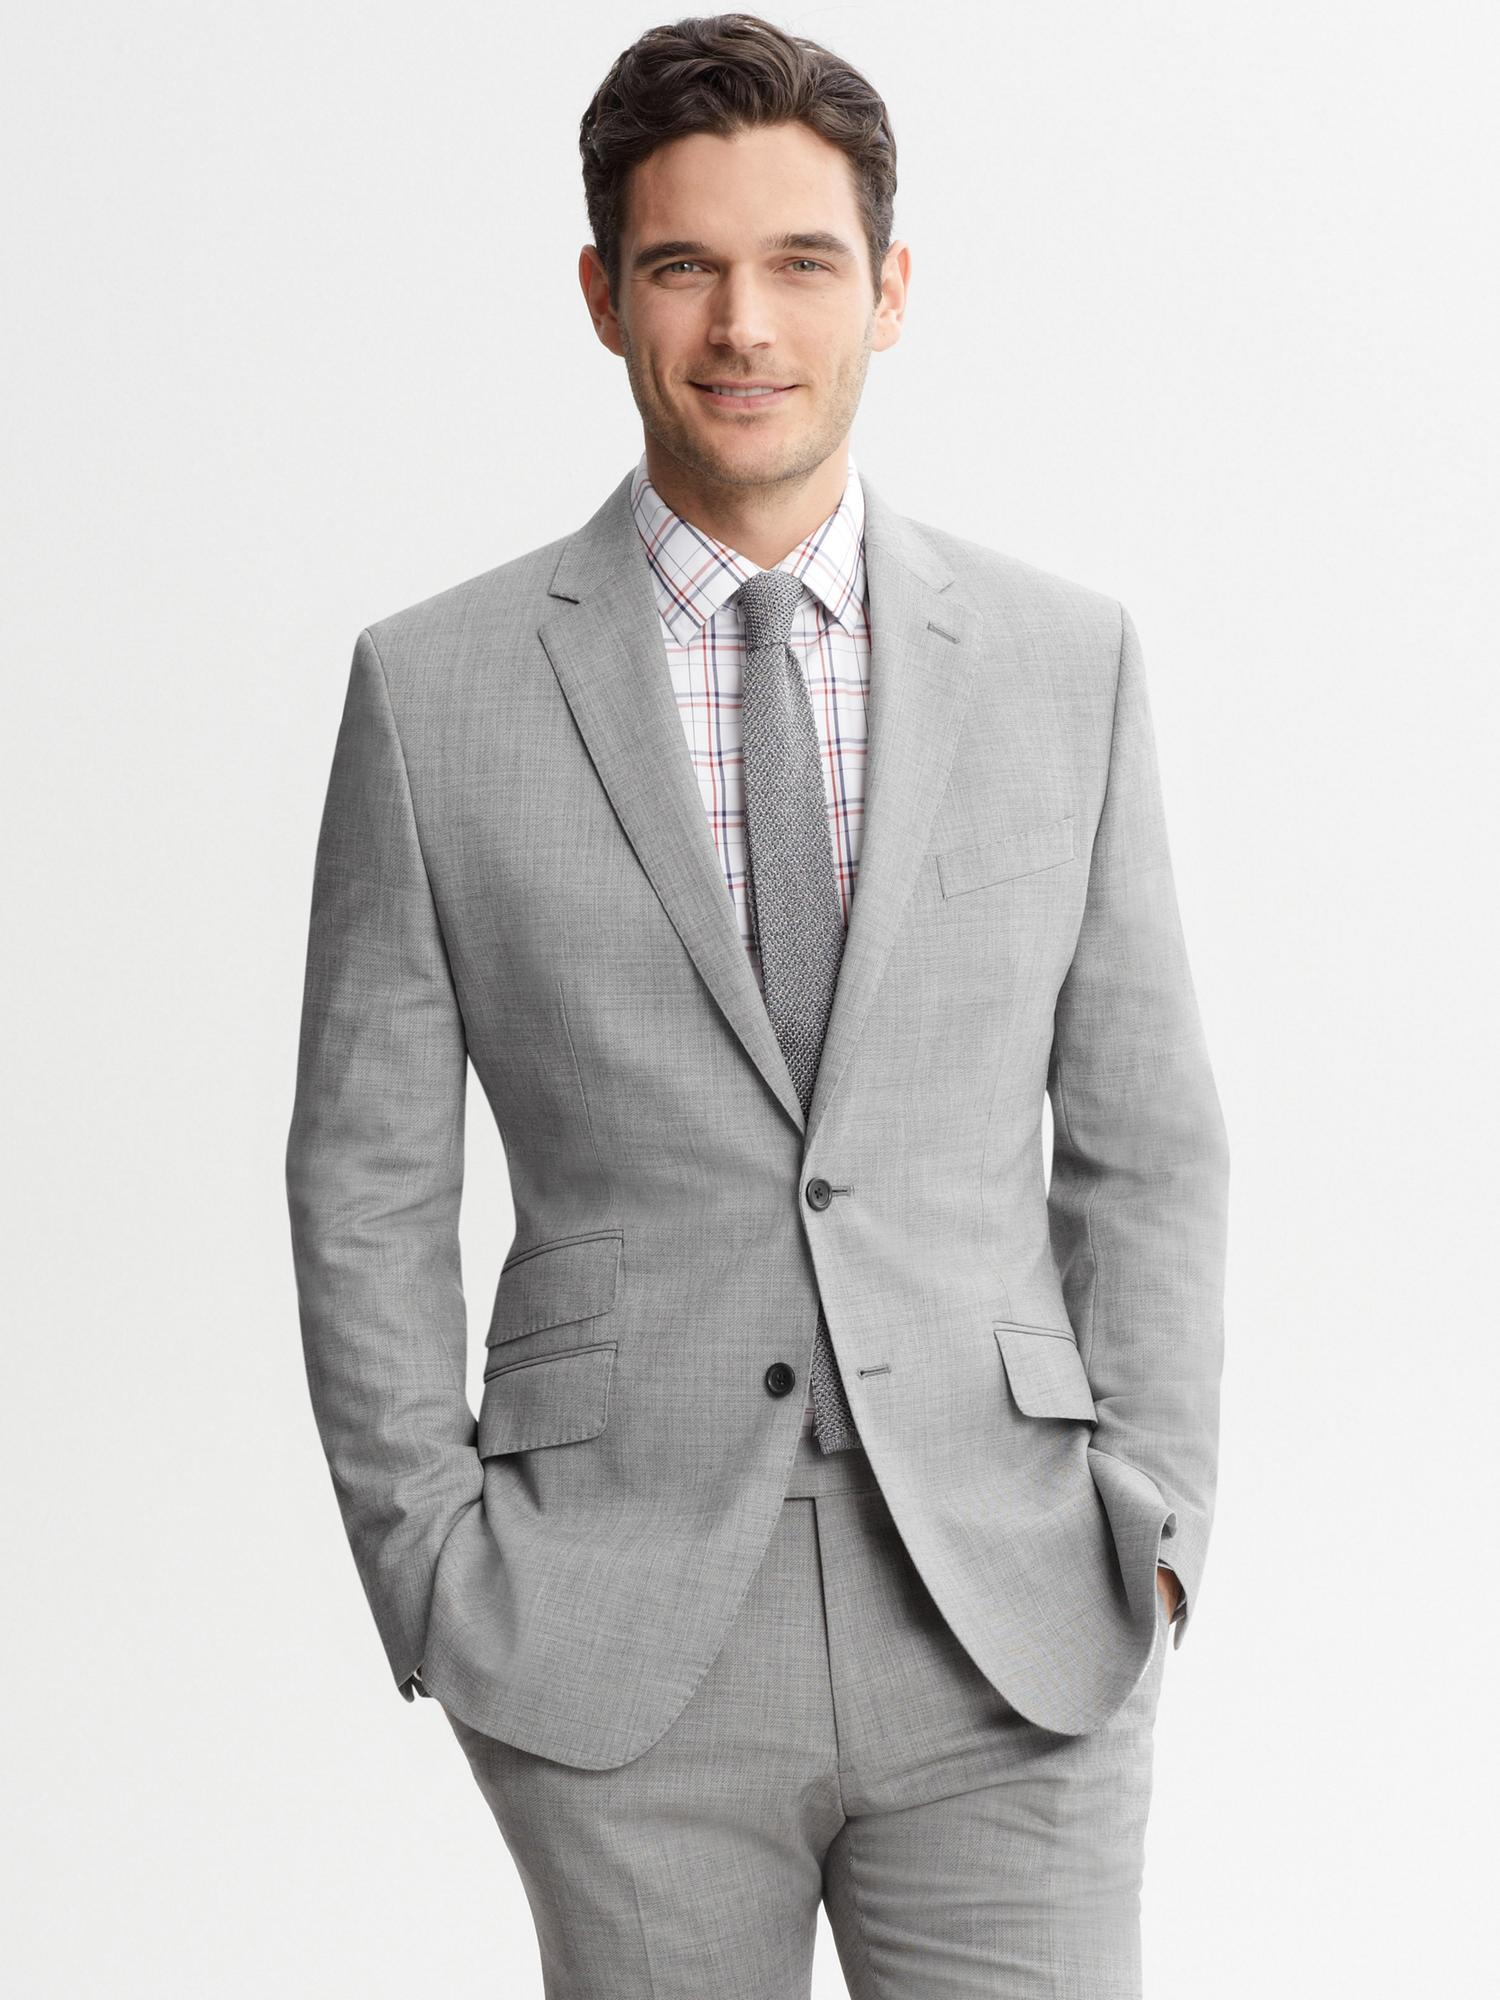 River Island Silver Gray Suit